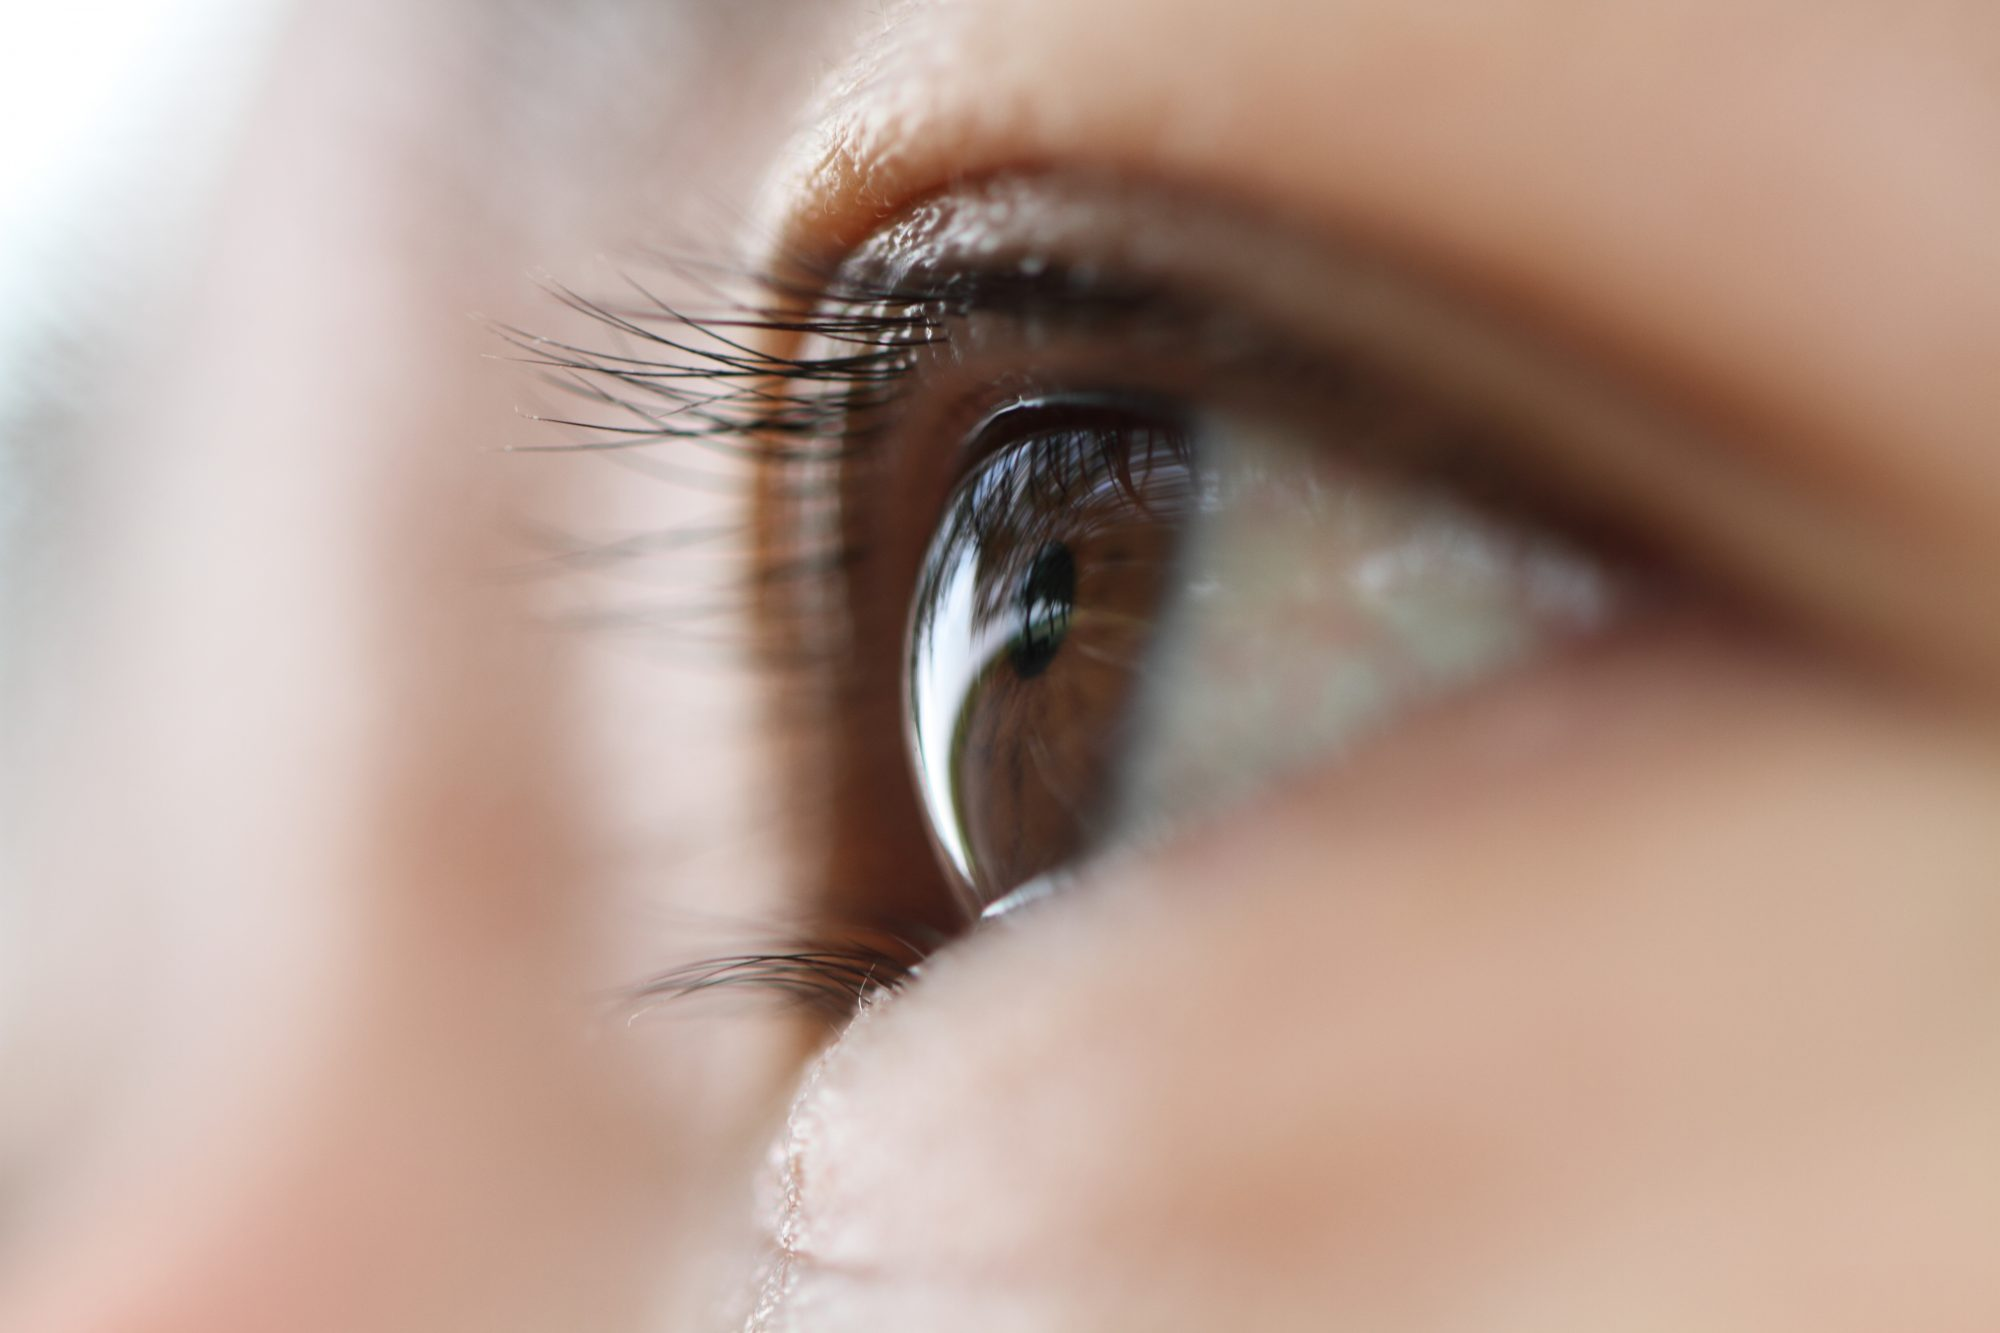 14 Dry Eye Symptoms You Shouldn't Ignore